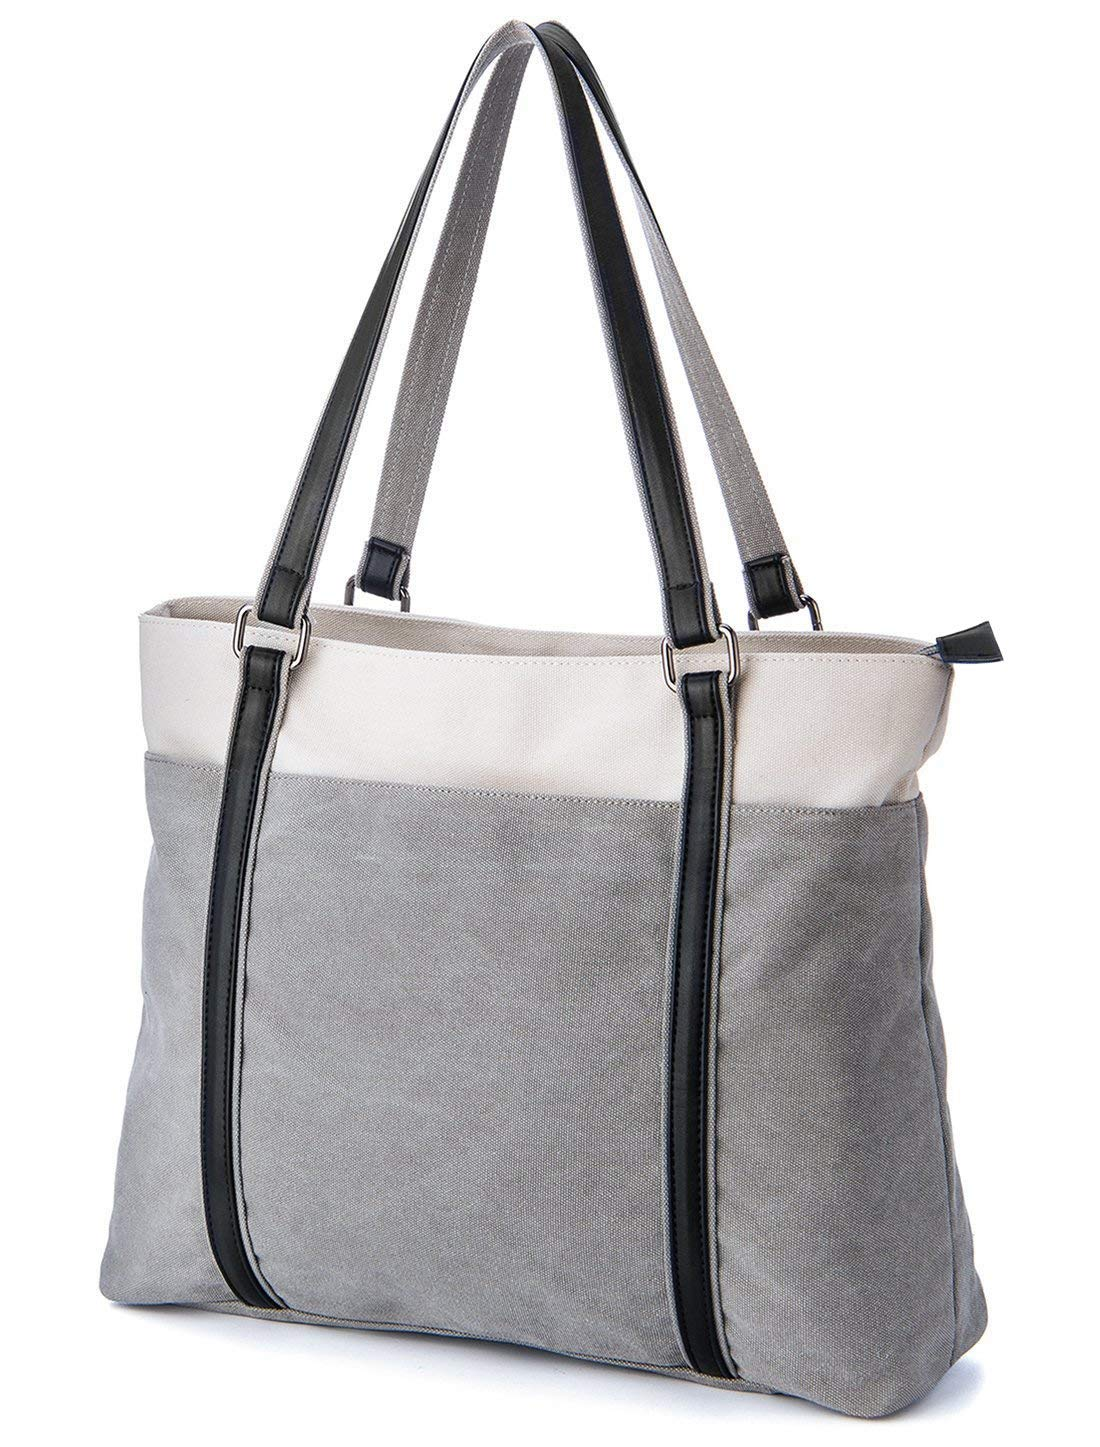 Coolqiya Canvas Tote Handbag Laptop Shoulder Bag Business Work School for Man and Woman-Light Gray